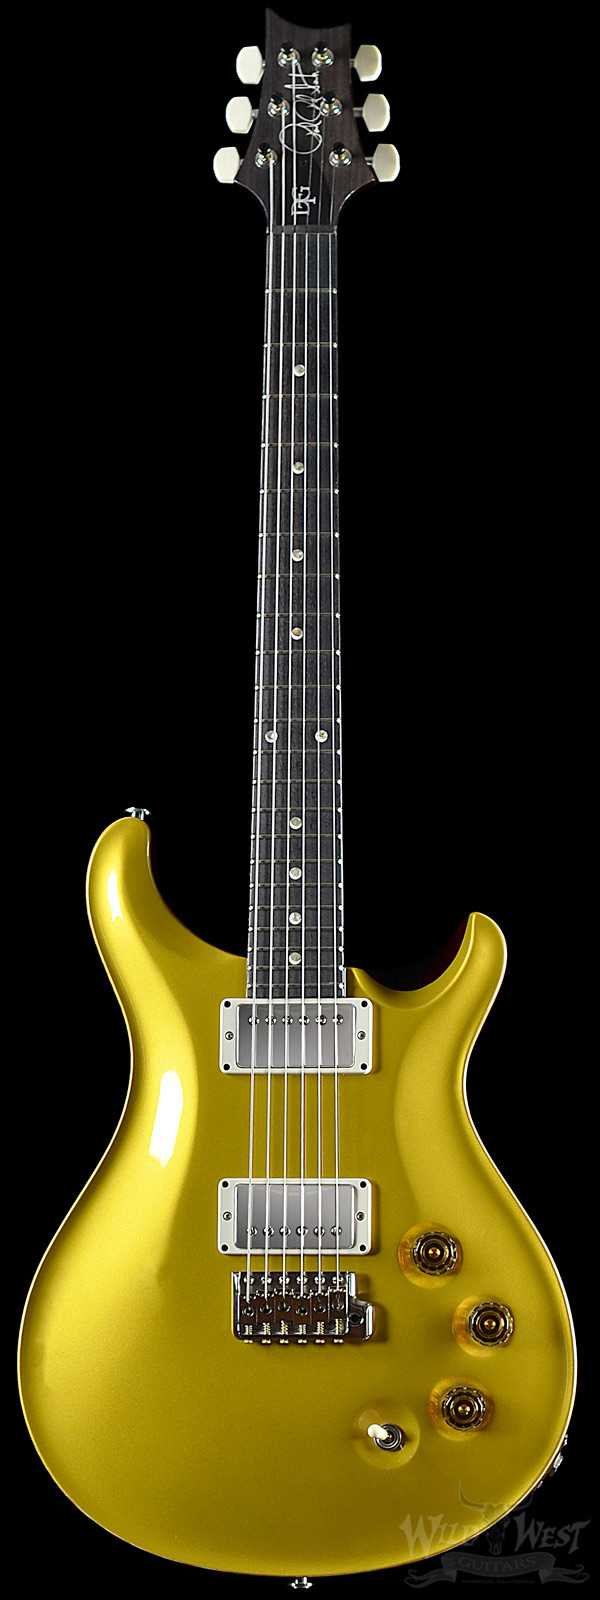 PRS DGT (David Grissom Trem) Gold Top with Moon Inlays